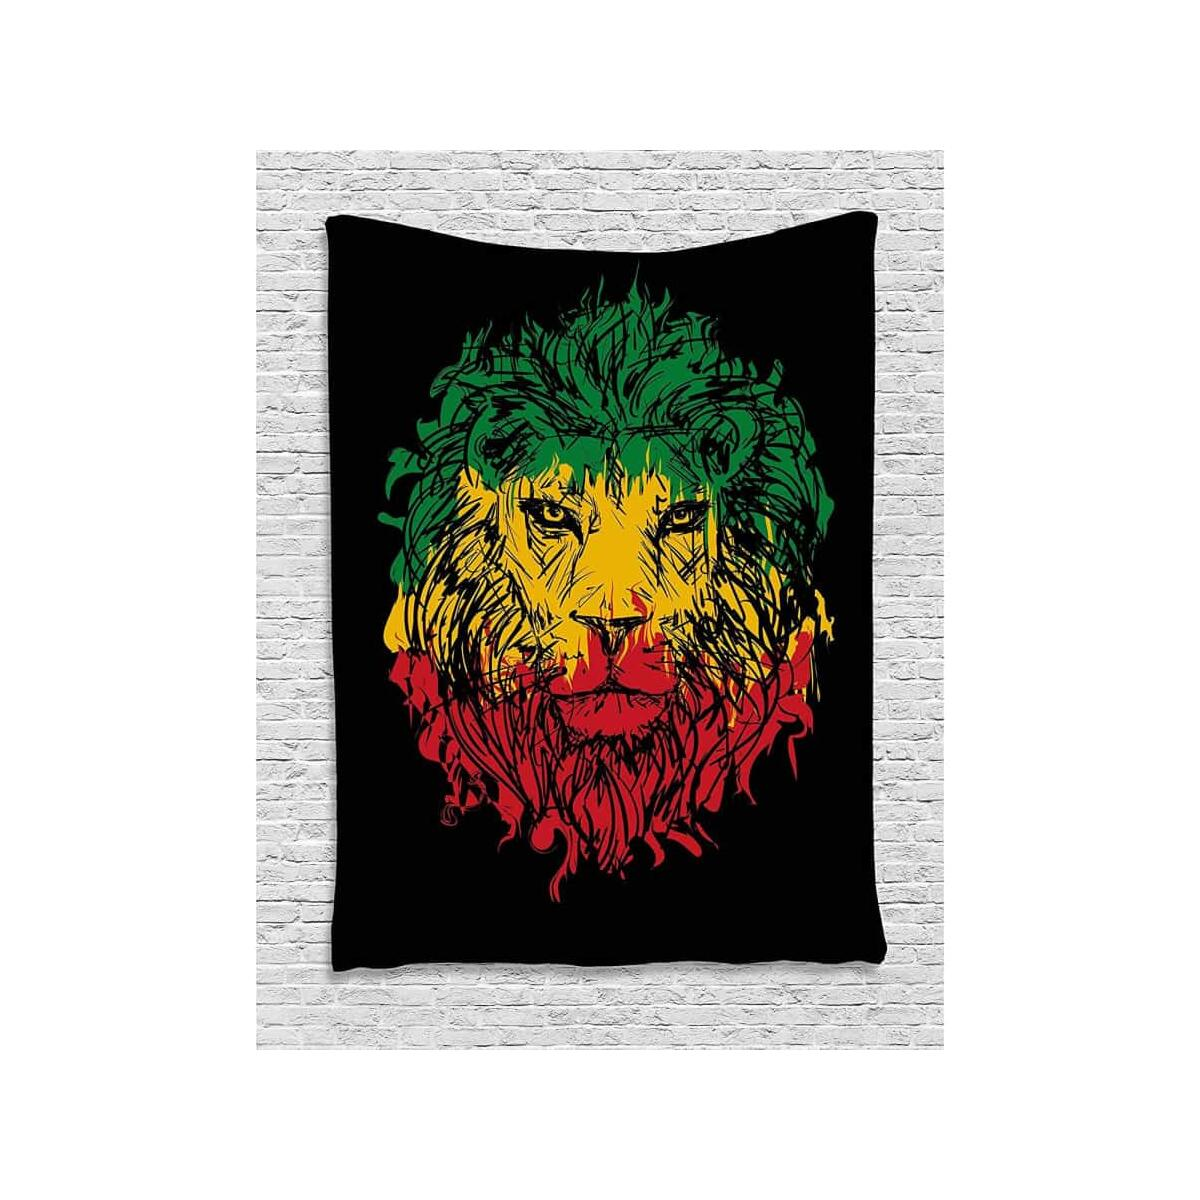 Calico lion headband black background wall hanging suitable for bedroom living room dormitory light, 150x100cm